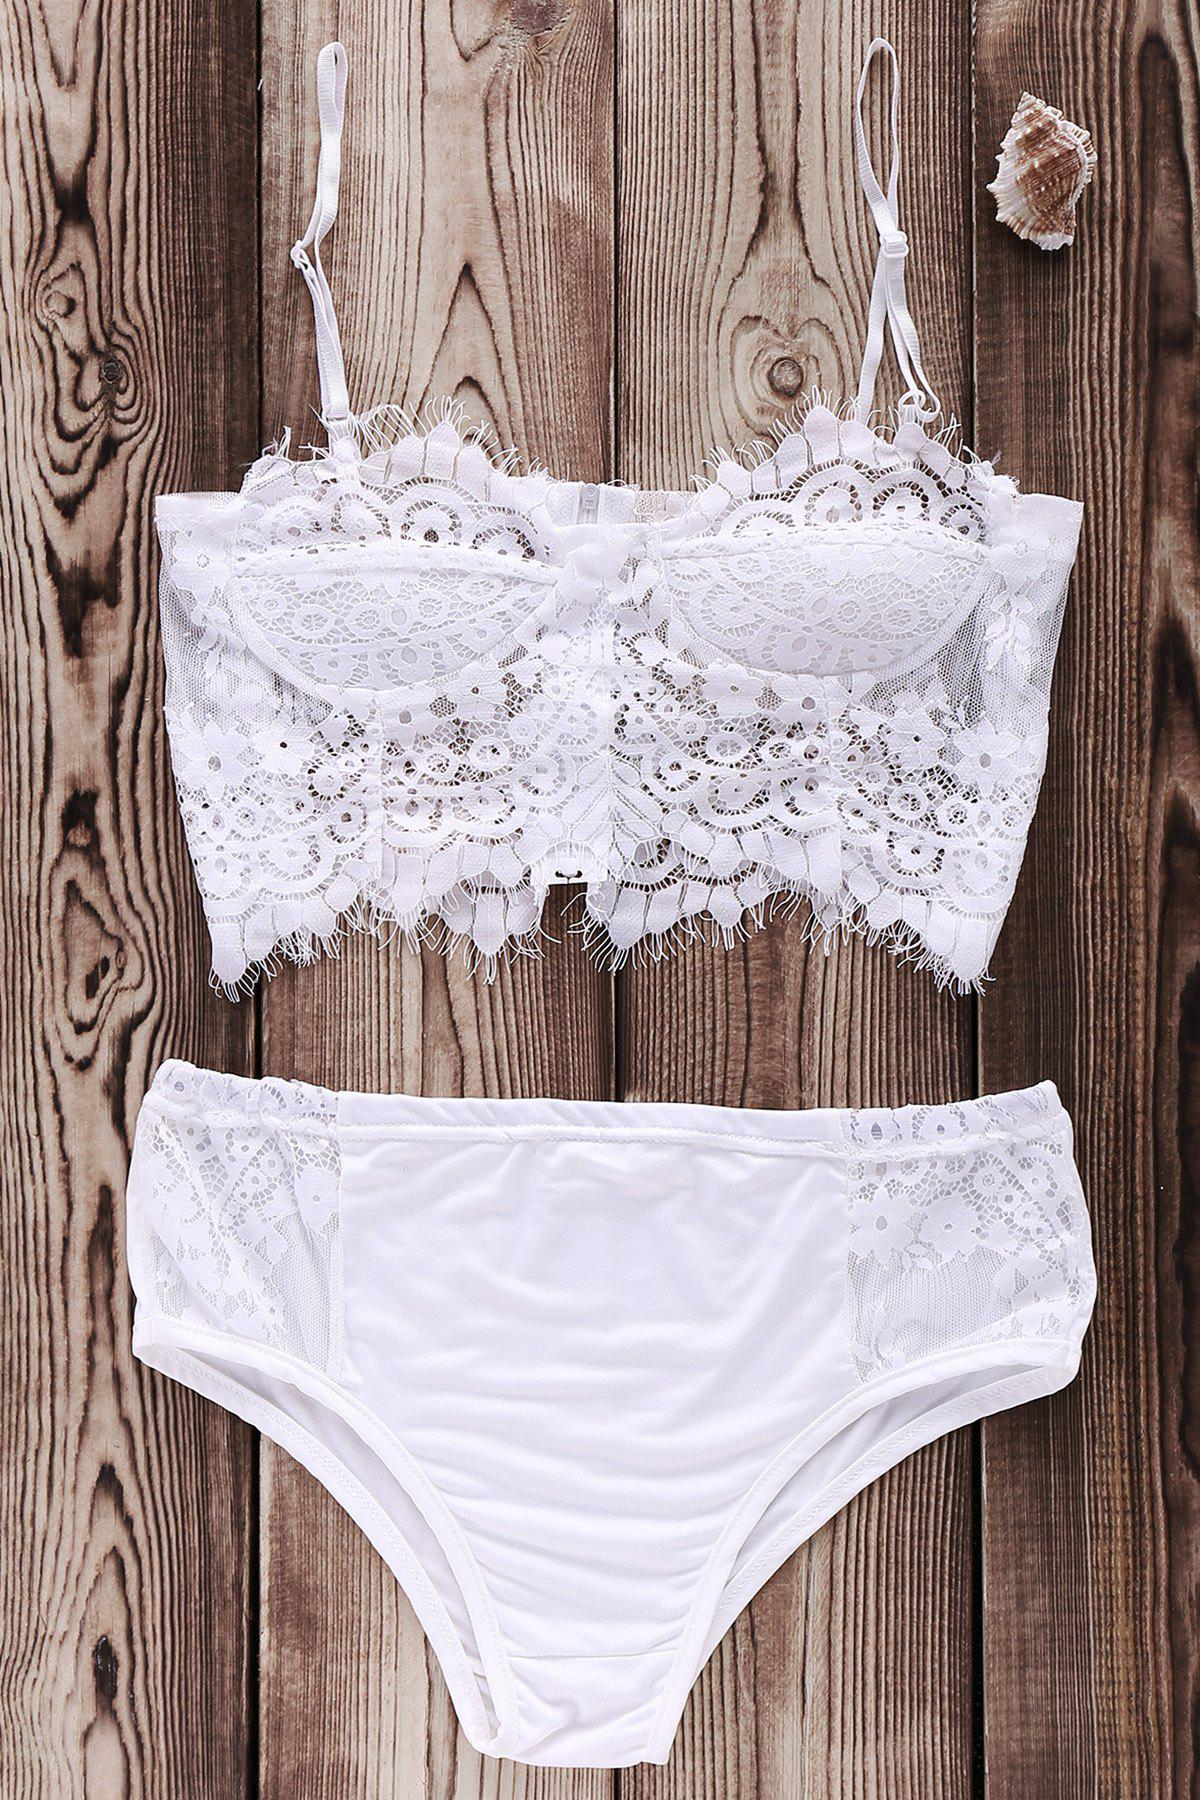 Cami White Lace Splicing Bikini Set 176203102